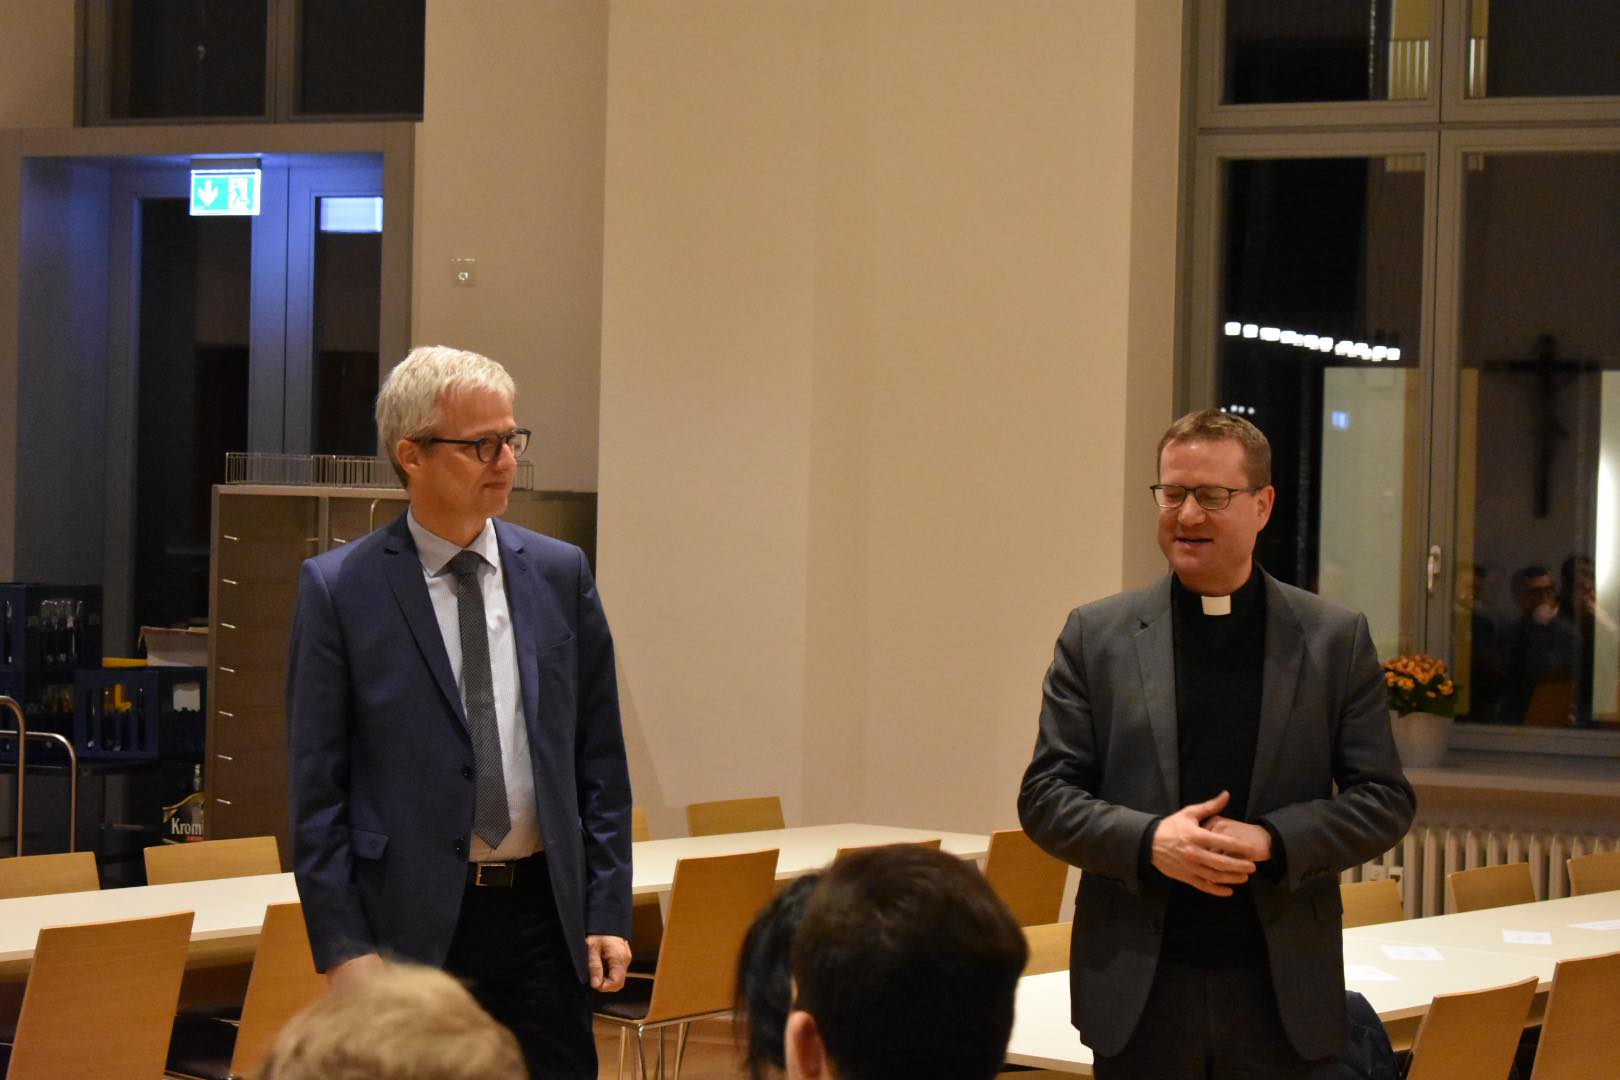 Dr. Oeldemann (leader of the scholars' programme) & Christian Städter (spiritual guide of the seminary)